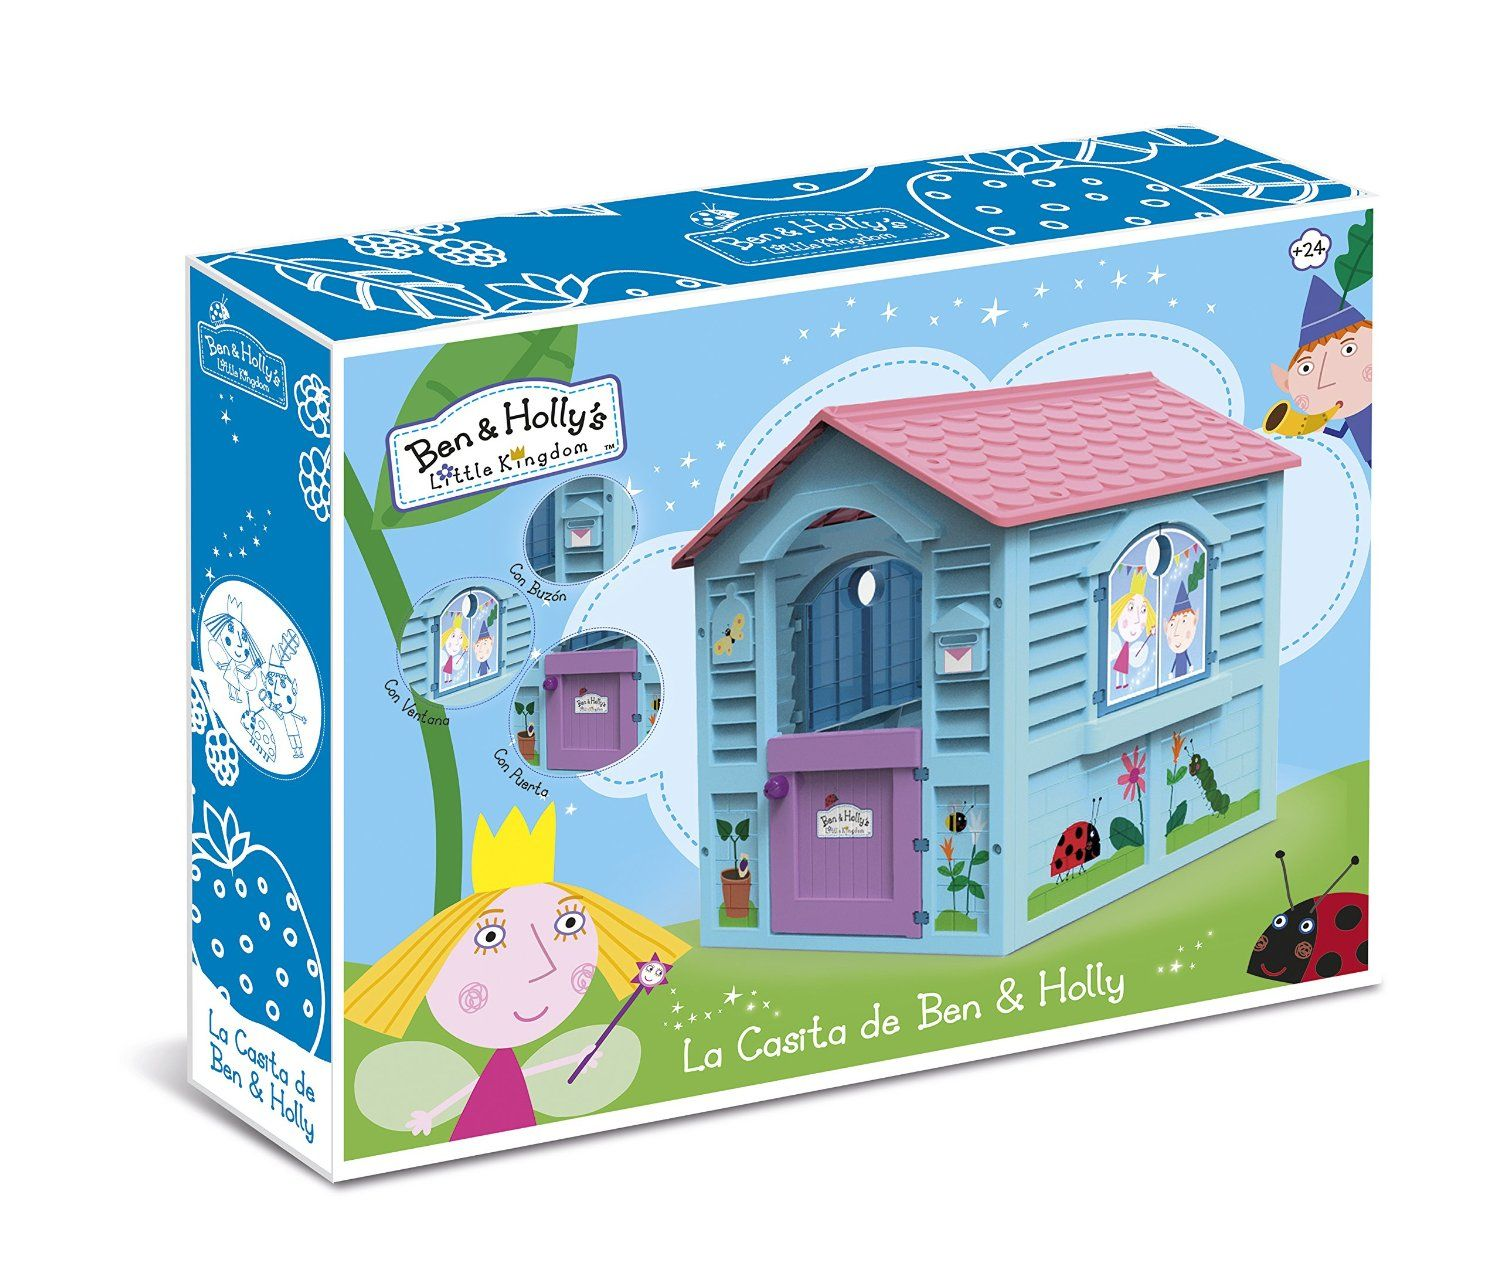 Oferta Casita infantil Ben and Holly. Chicos 89534, IndalChess.com ...